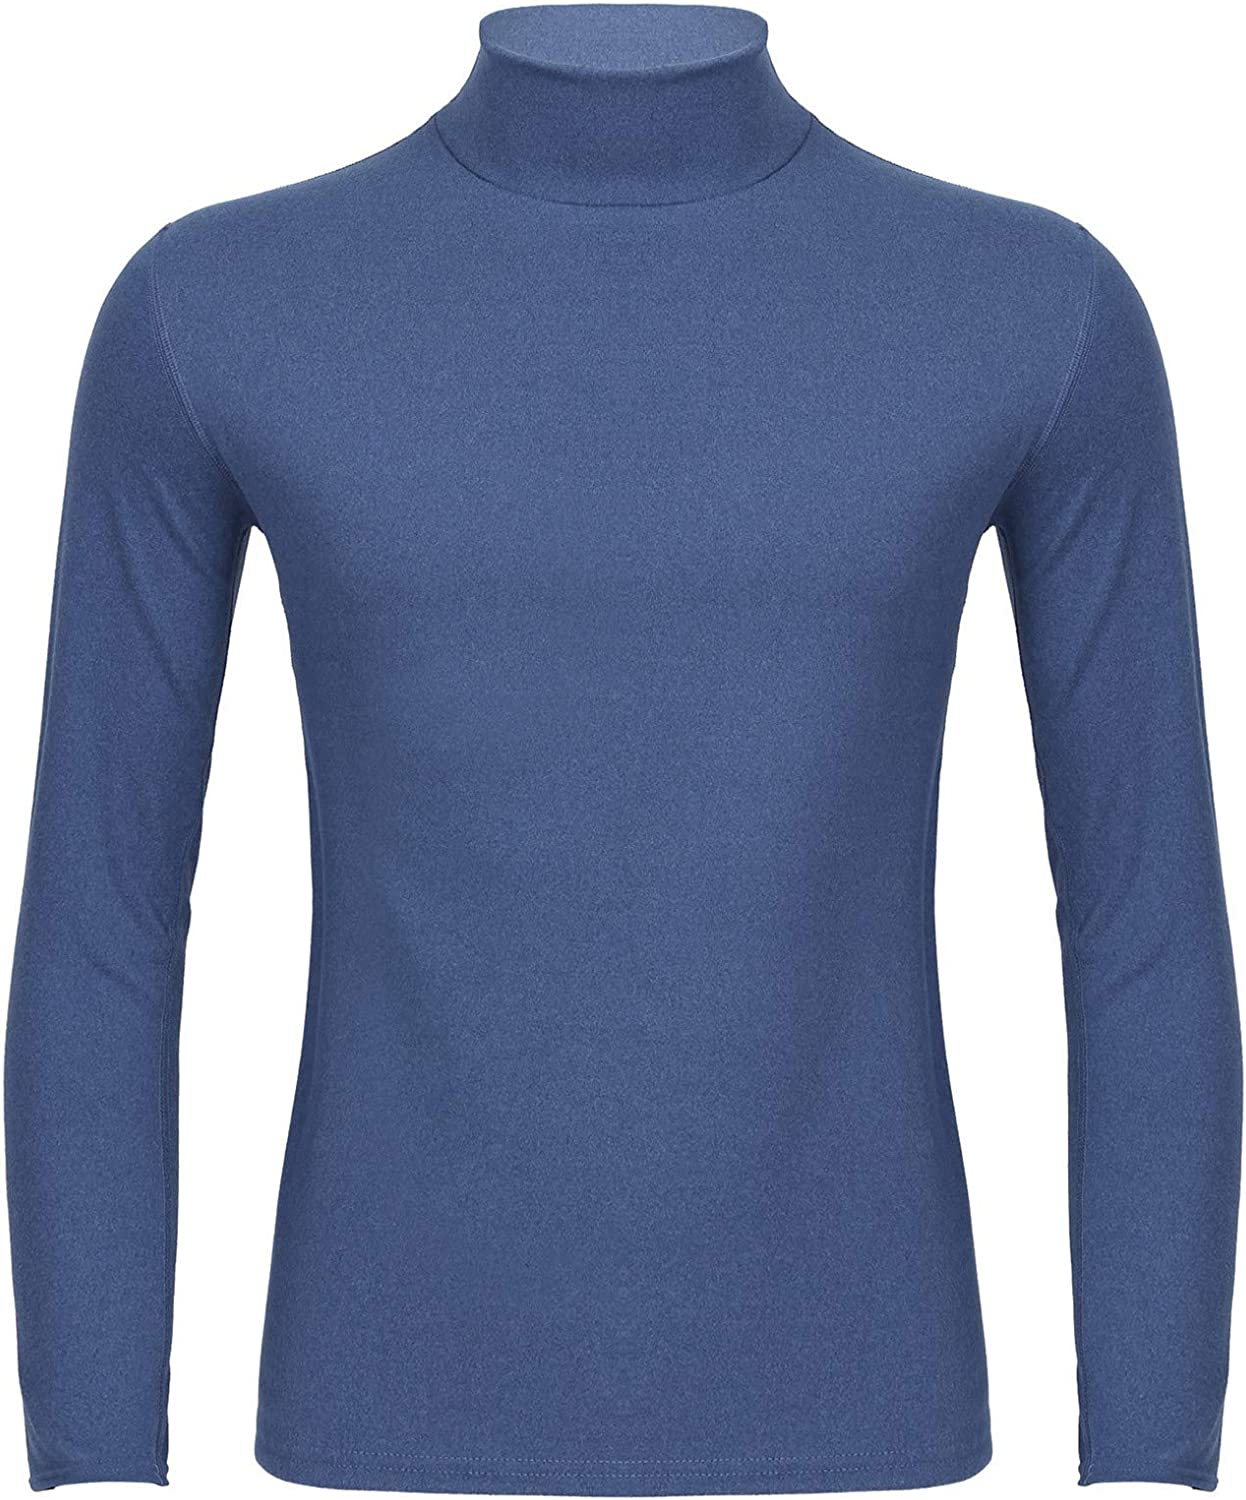 vastwit Men's Thermal Underwear Turtleneck Long Sleeve T-Shirts Casual Pollover Basic Tops